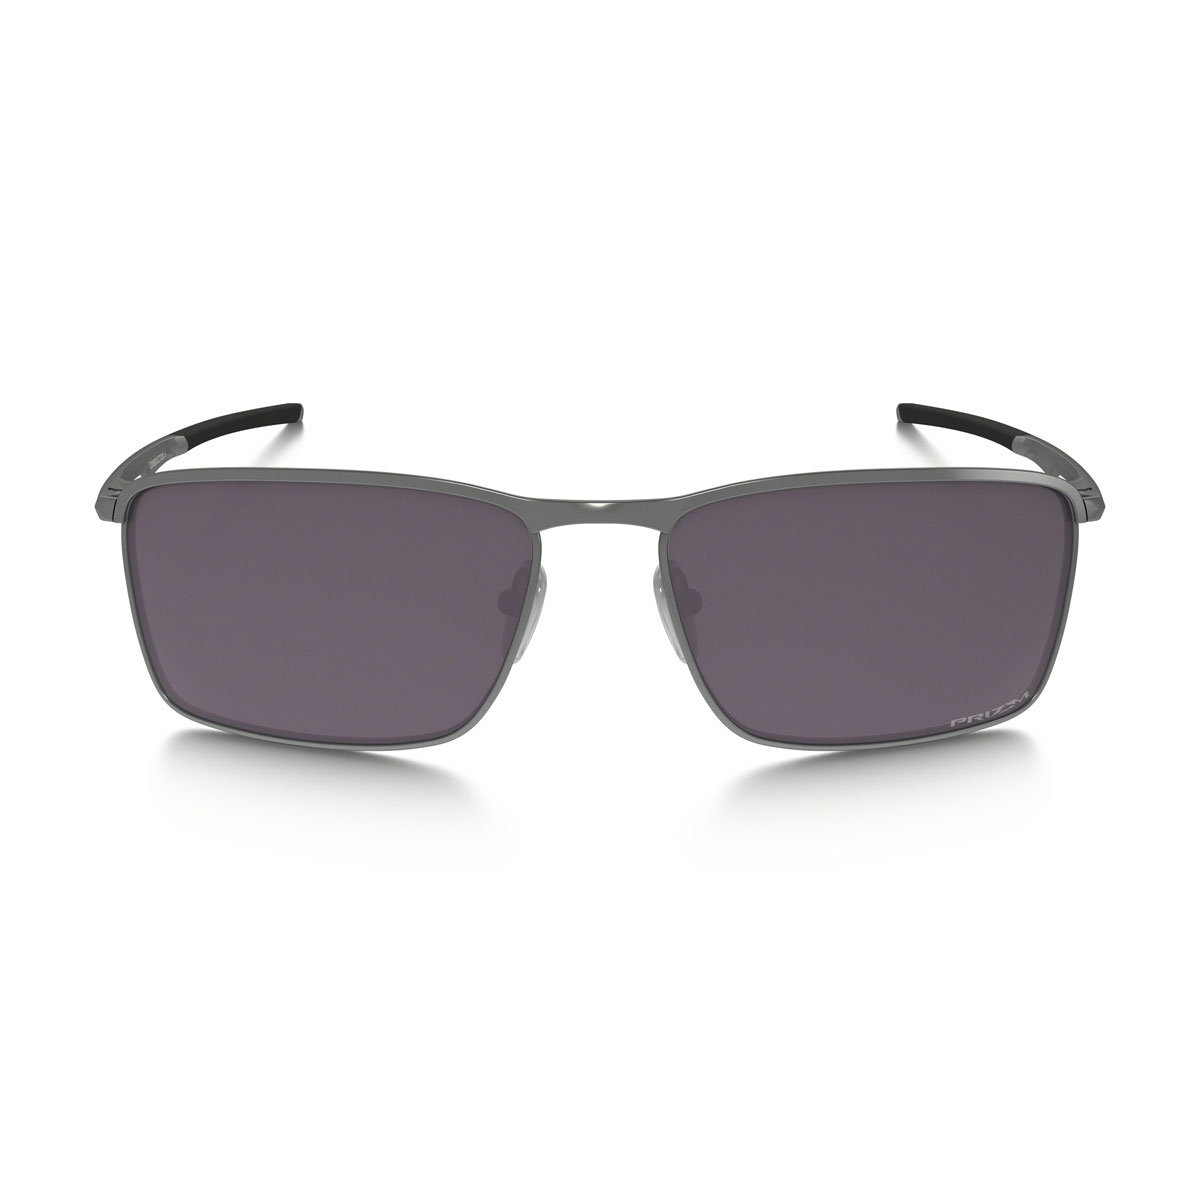 2320e09c205 ... Image of Oakley Conductor 6 Prizm Daily Polarized Sunglasses - Lead  Frame Prizm Daily Polarized